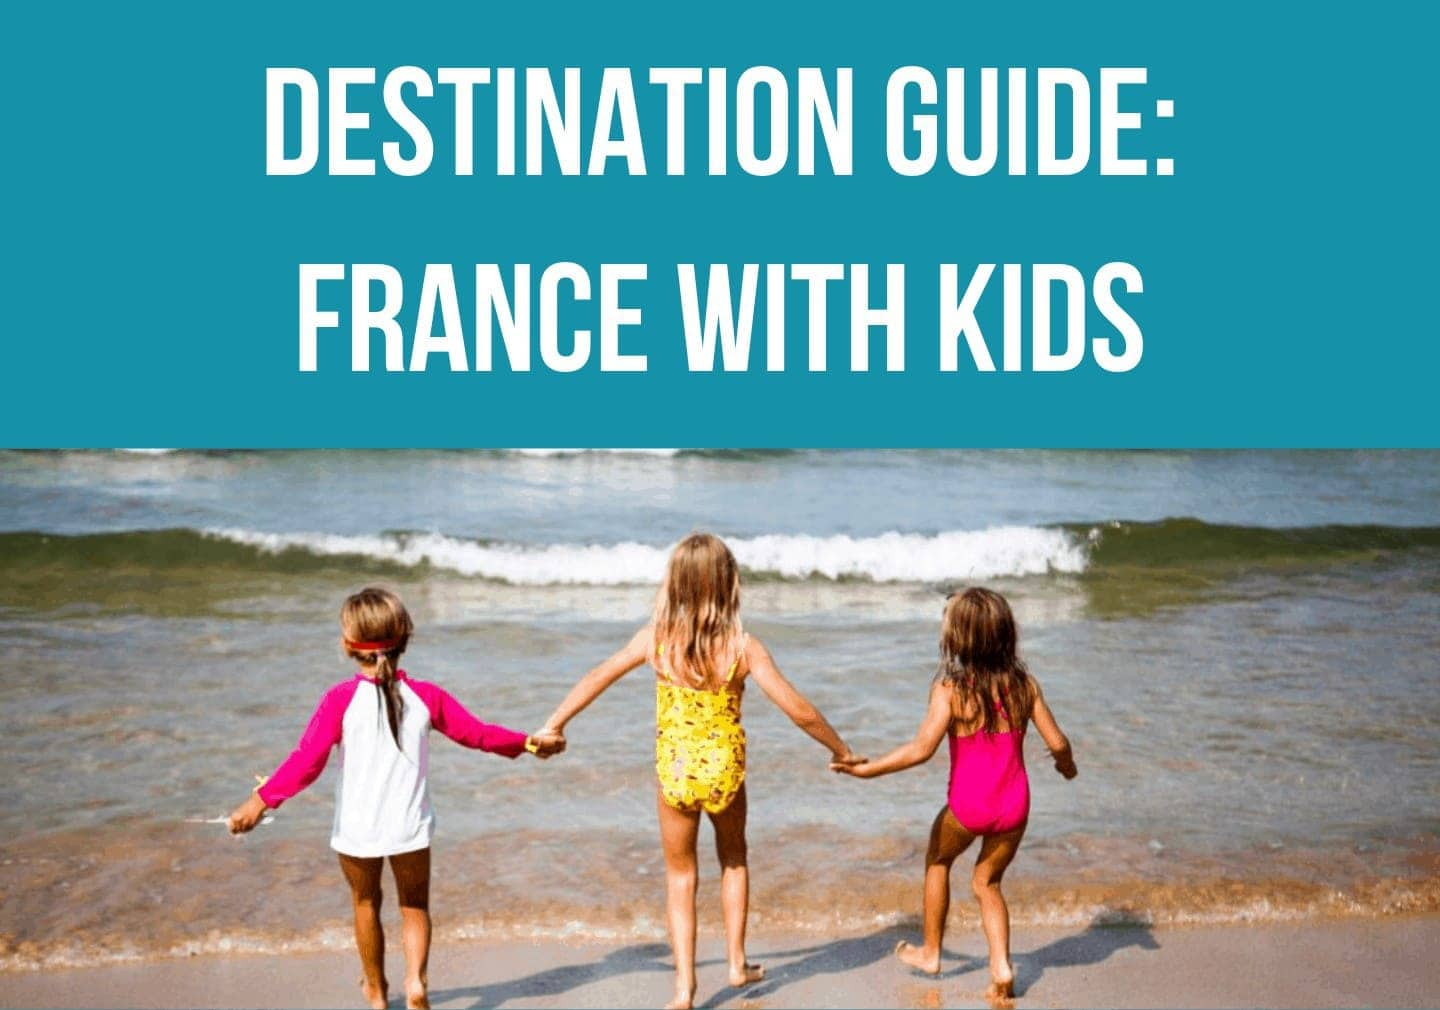 Family Travel Resources